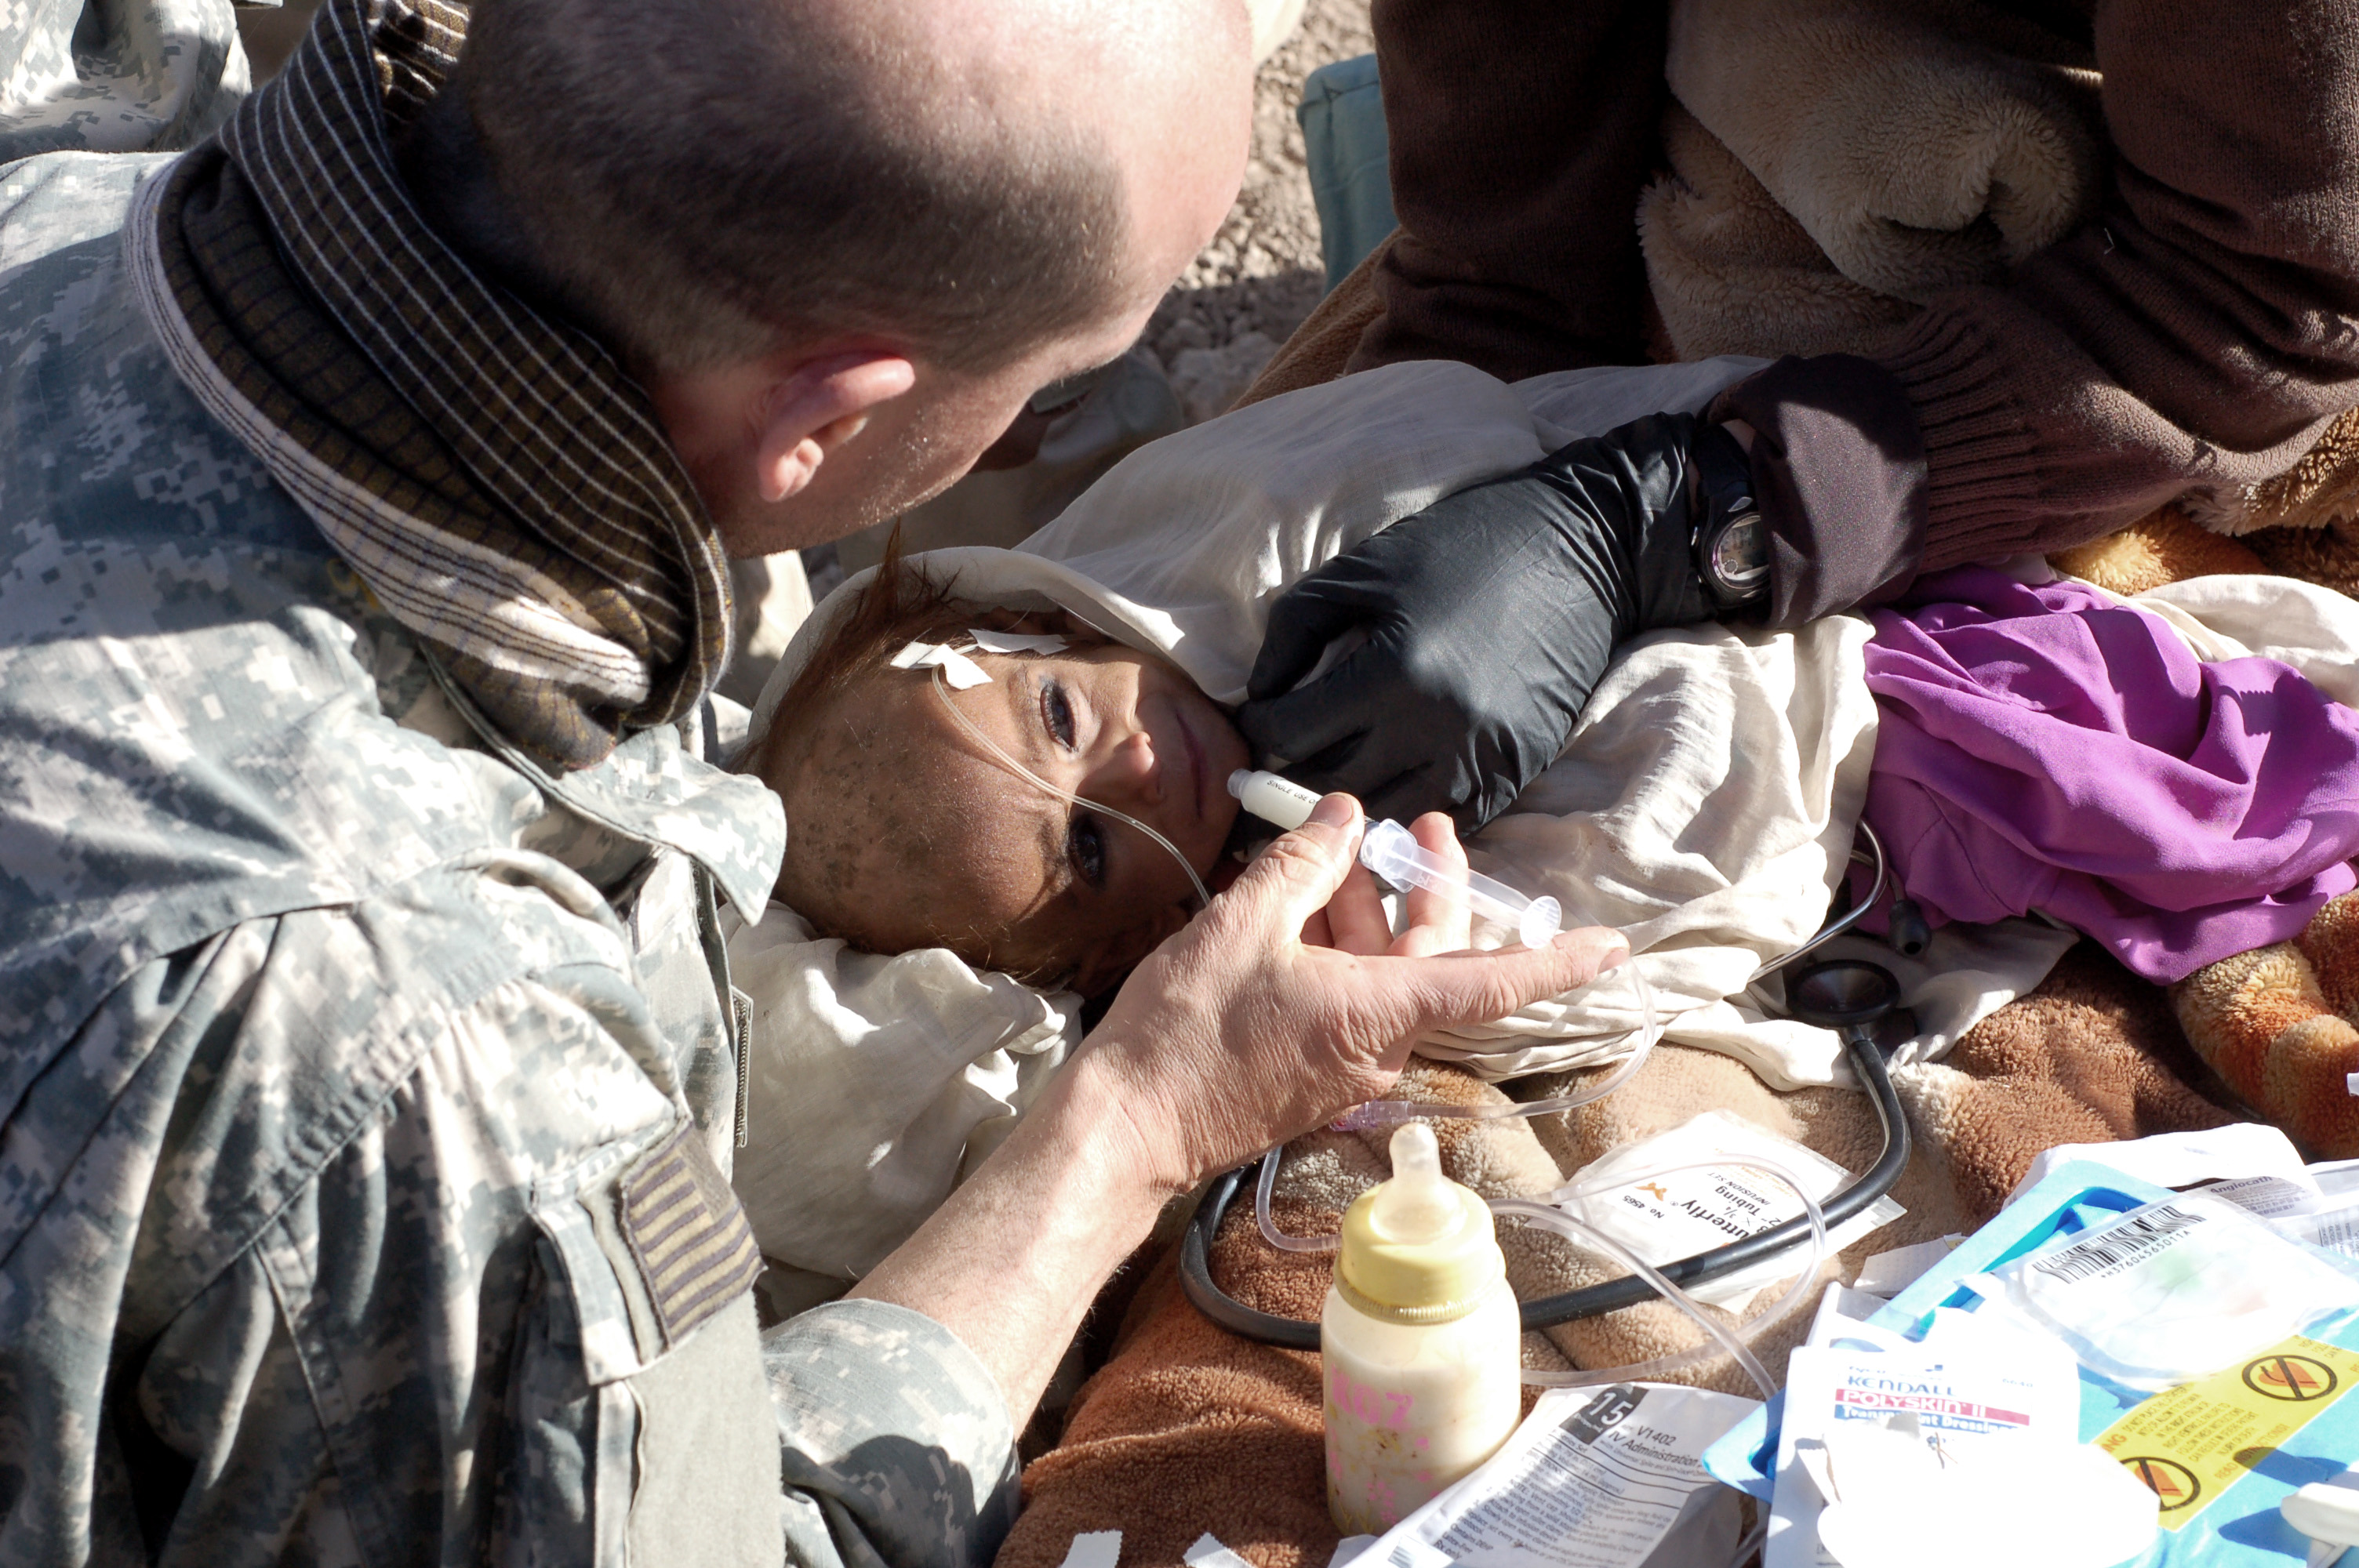 A U.S. Army medic tries to feed an 18-month gold Afghan girl using a syringe. She weighs approximately 14 pounds and is too weak to eat.